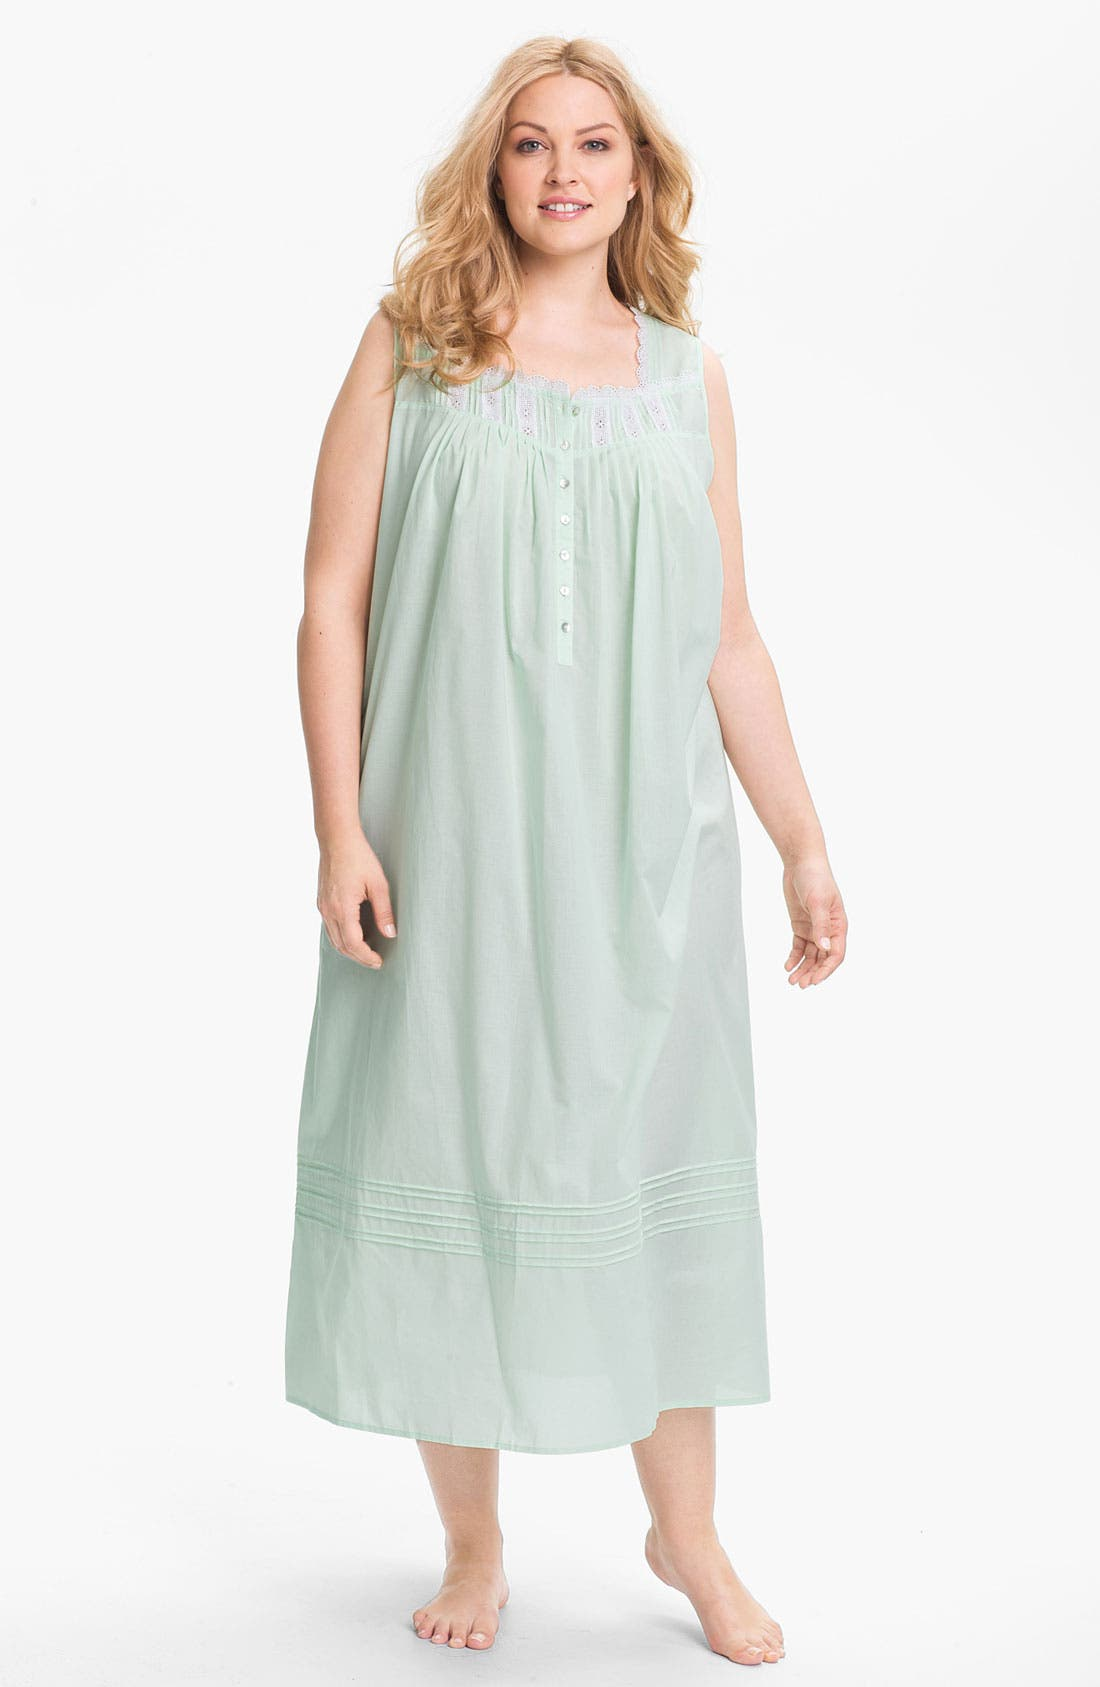 Alternate Image 1 Selected - Eileen West 'Morning Dew' Nightgown (Plus)